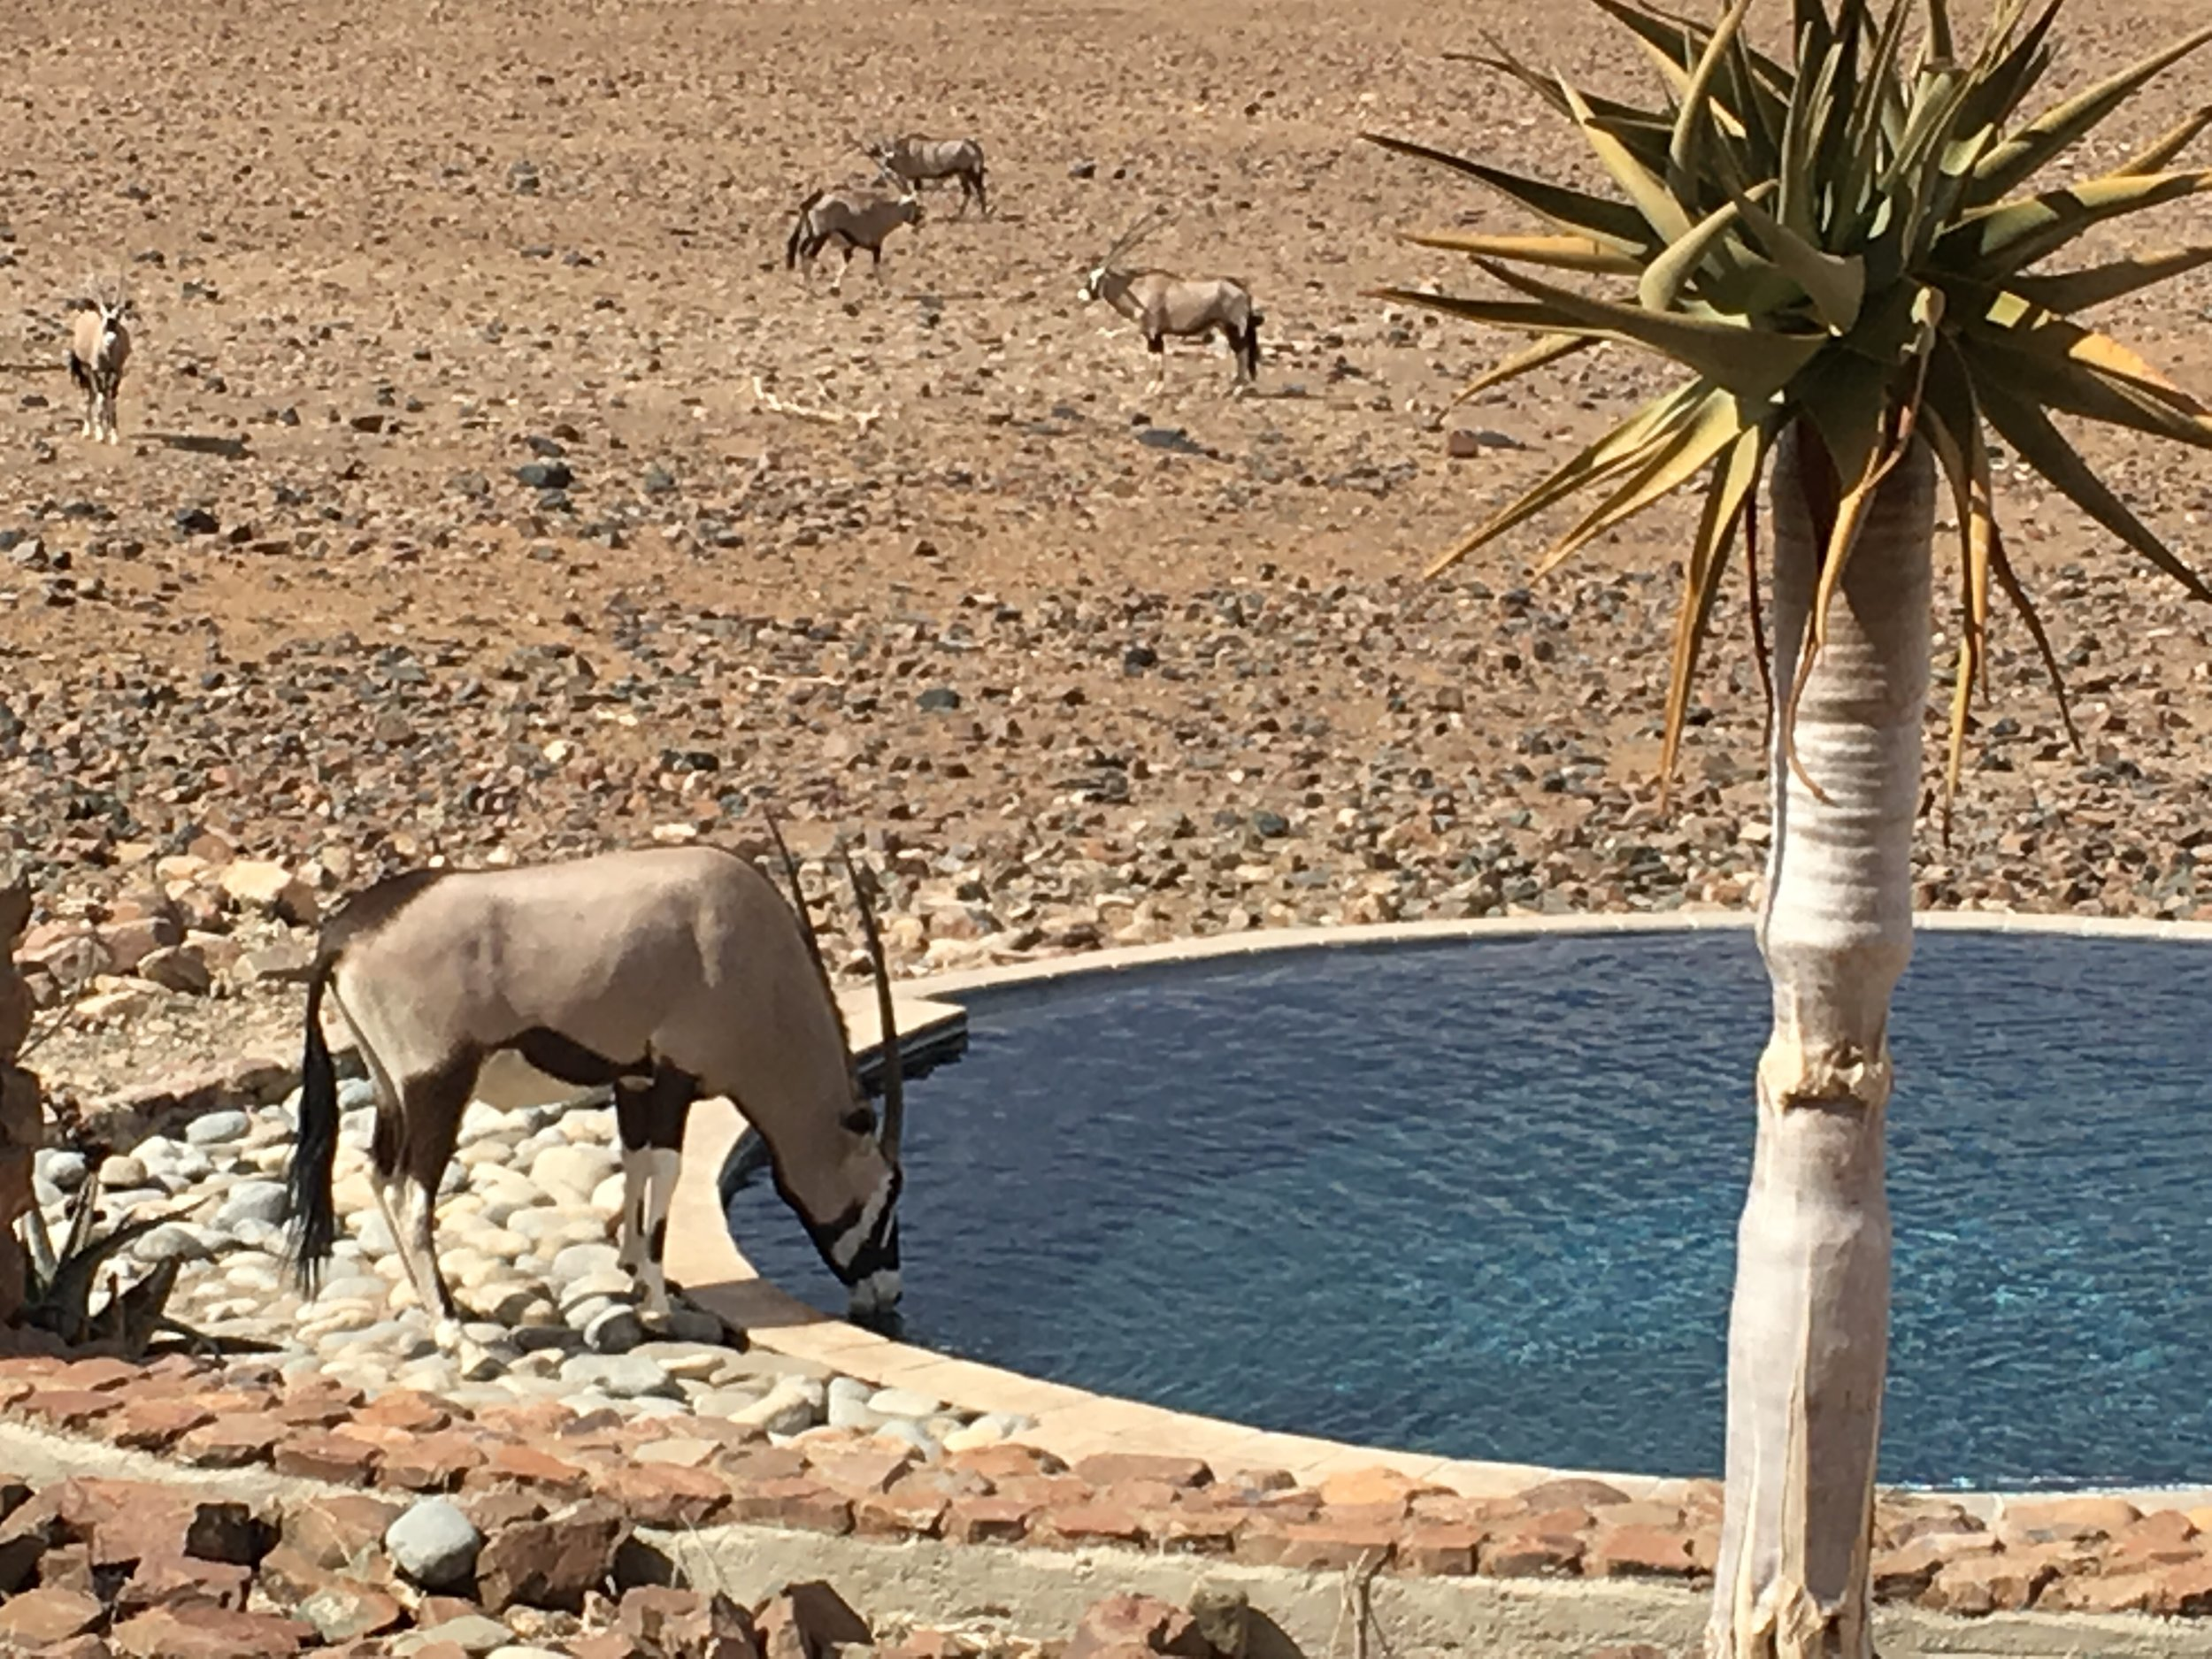 Oryx at the Lodge swimming pool